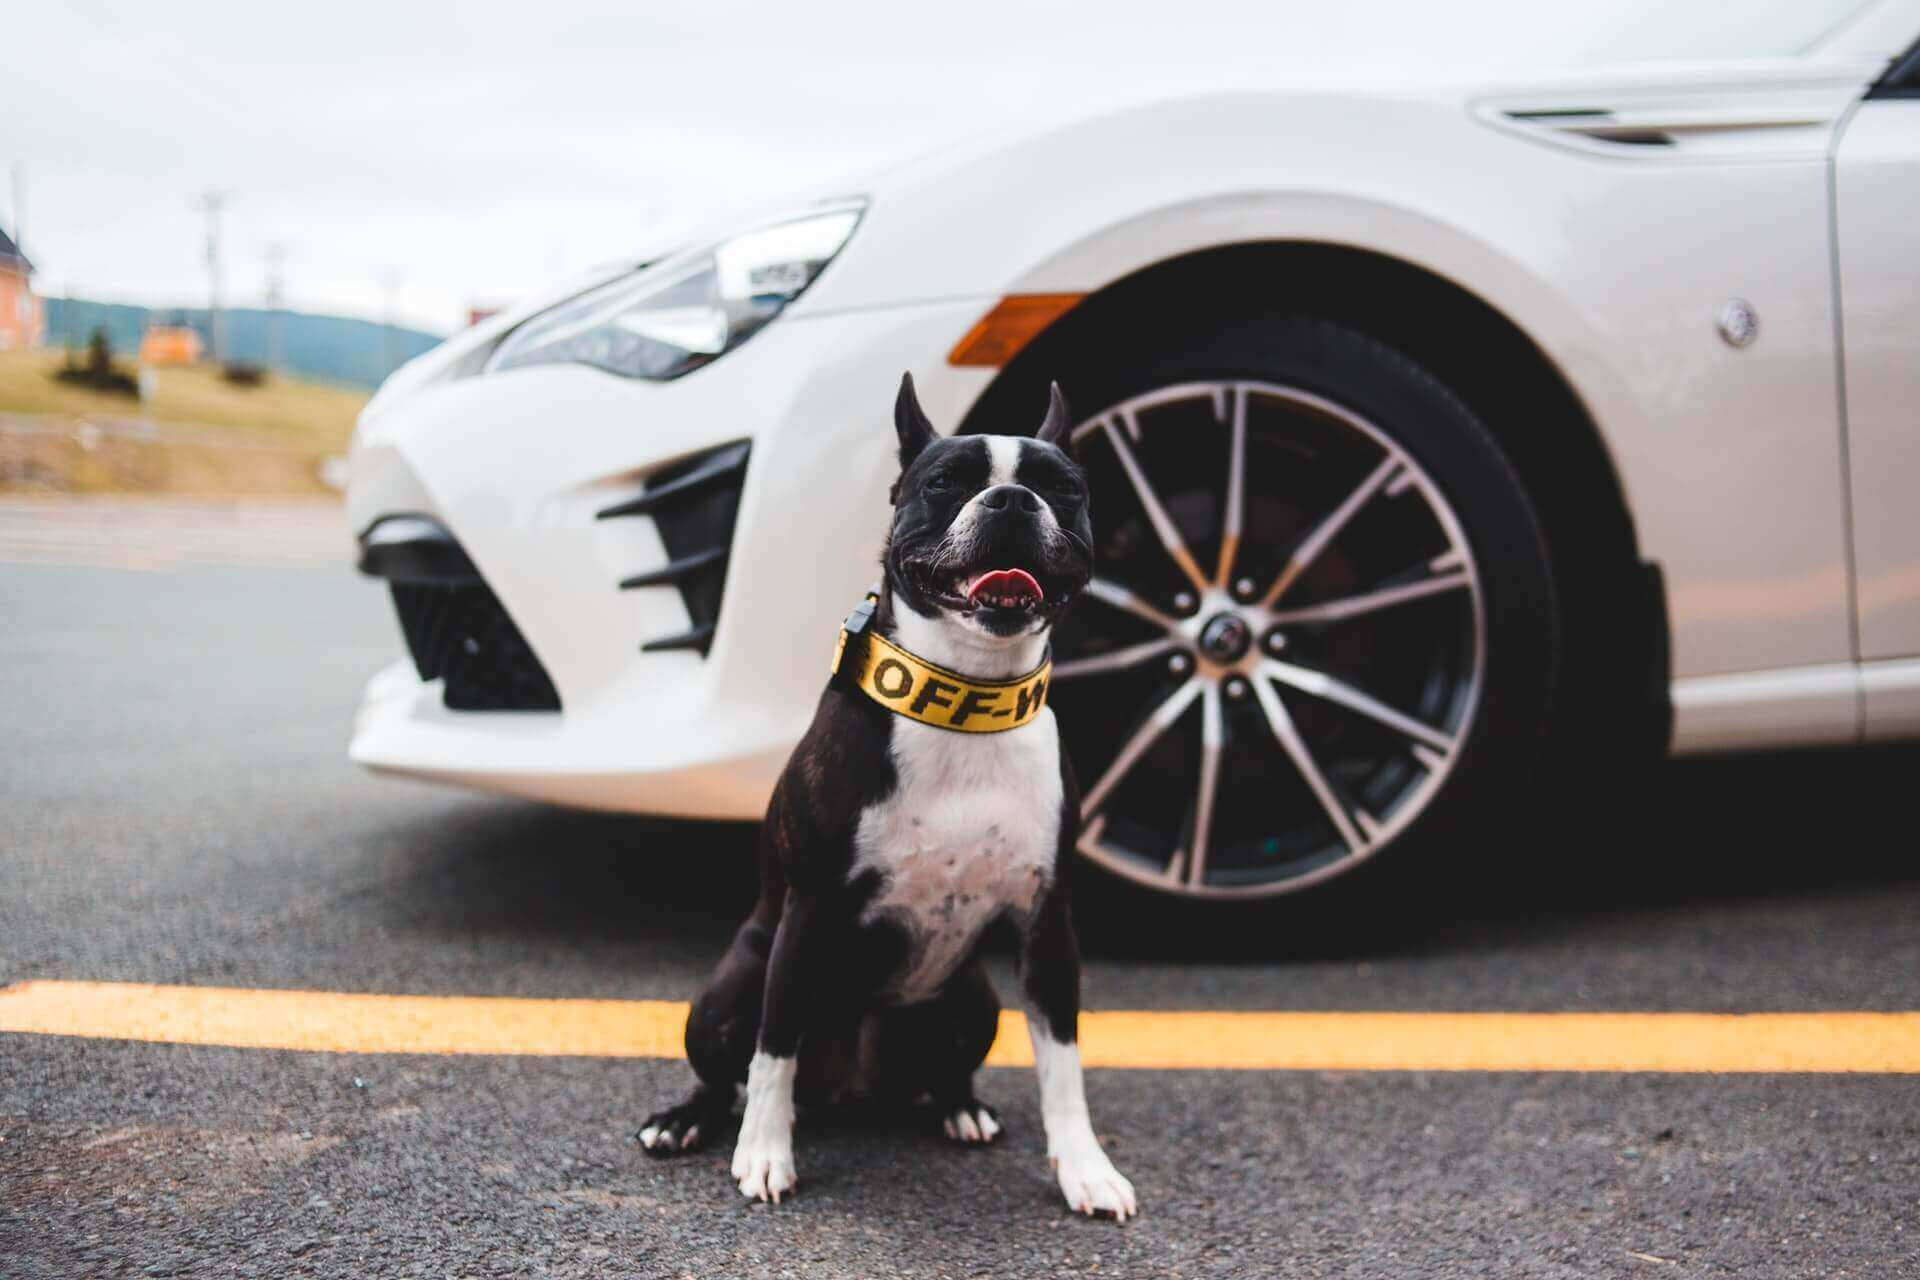 How to secure dog in car with a leash